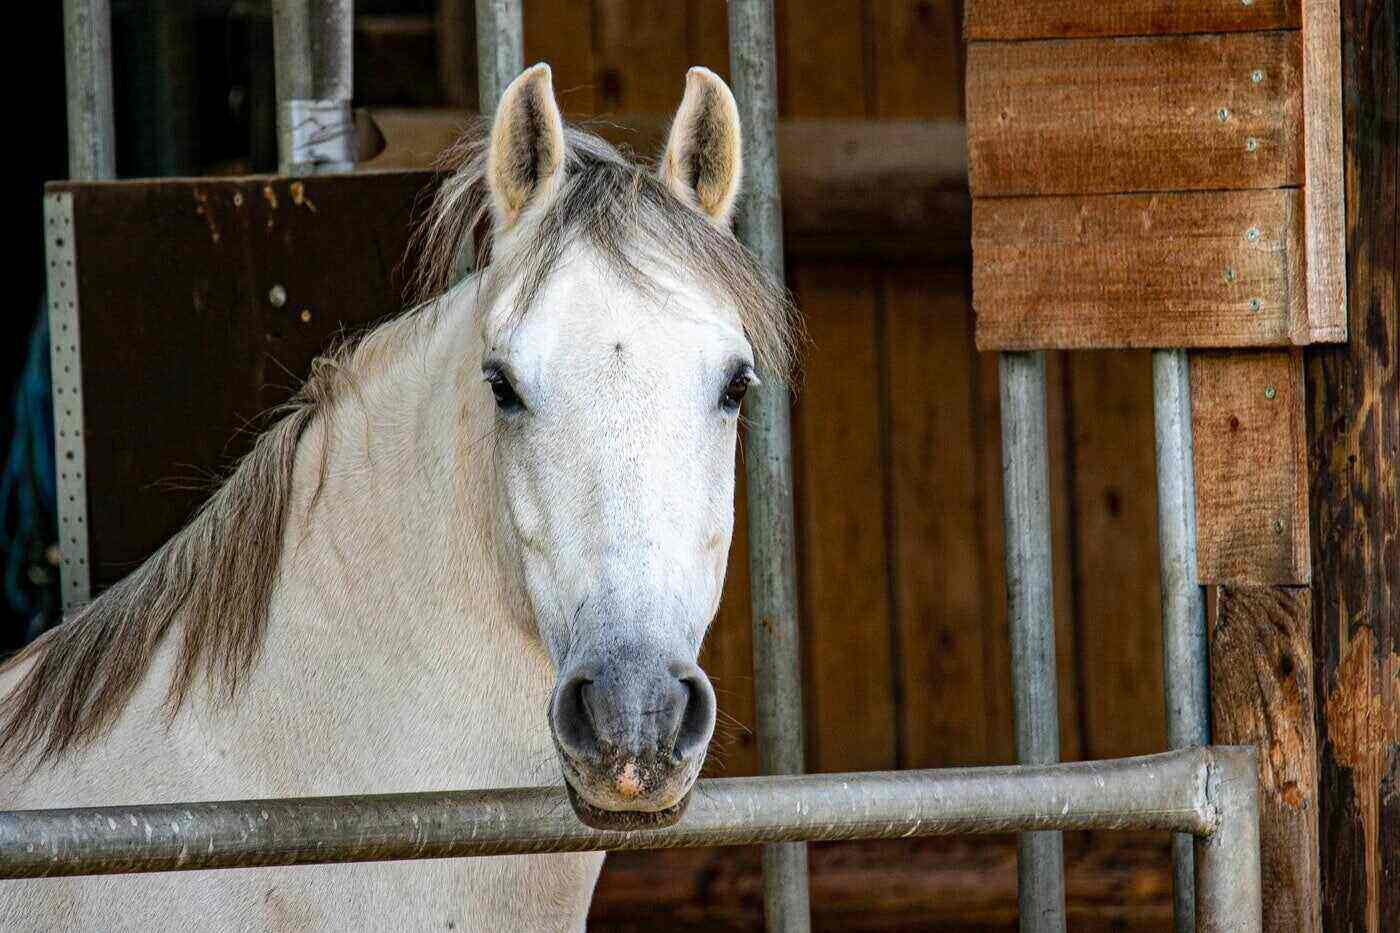 horse looking out of stall - how to care for a sick or injured horse